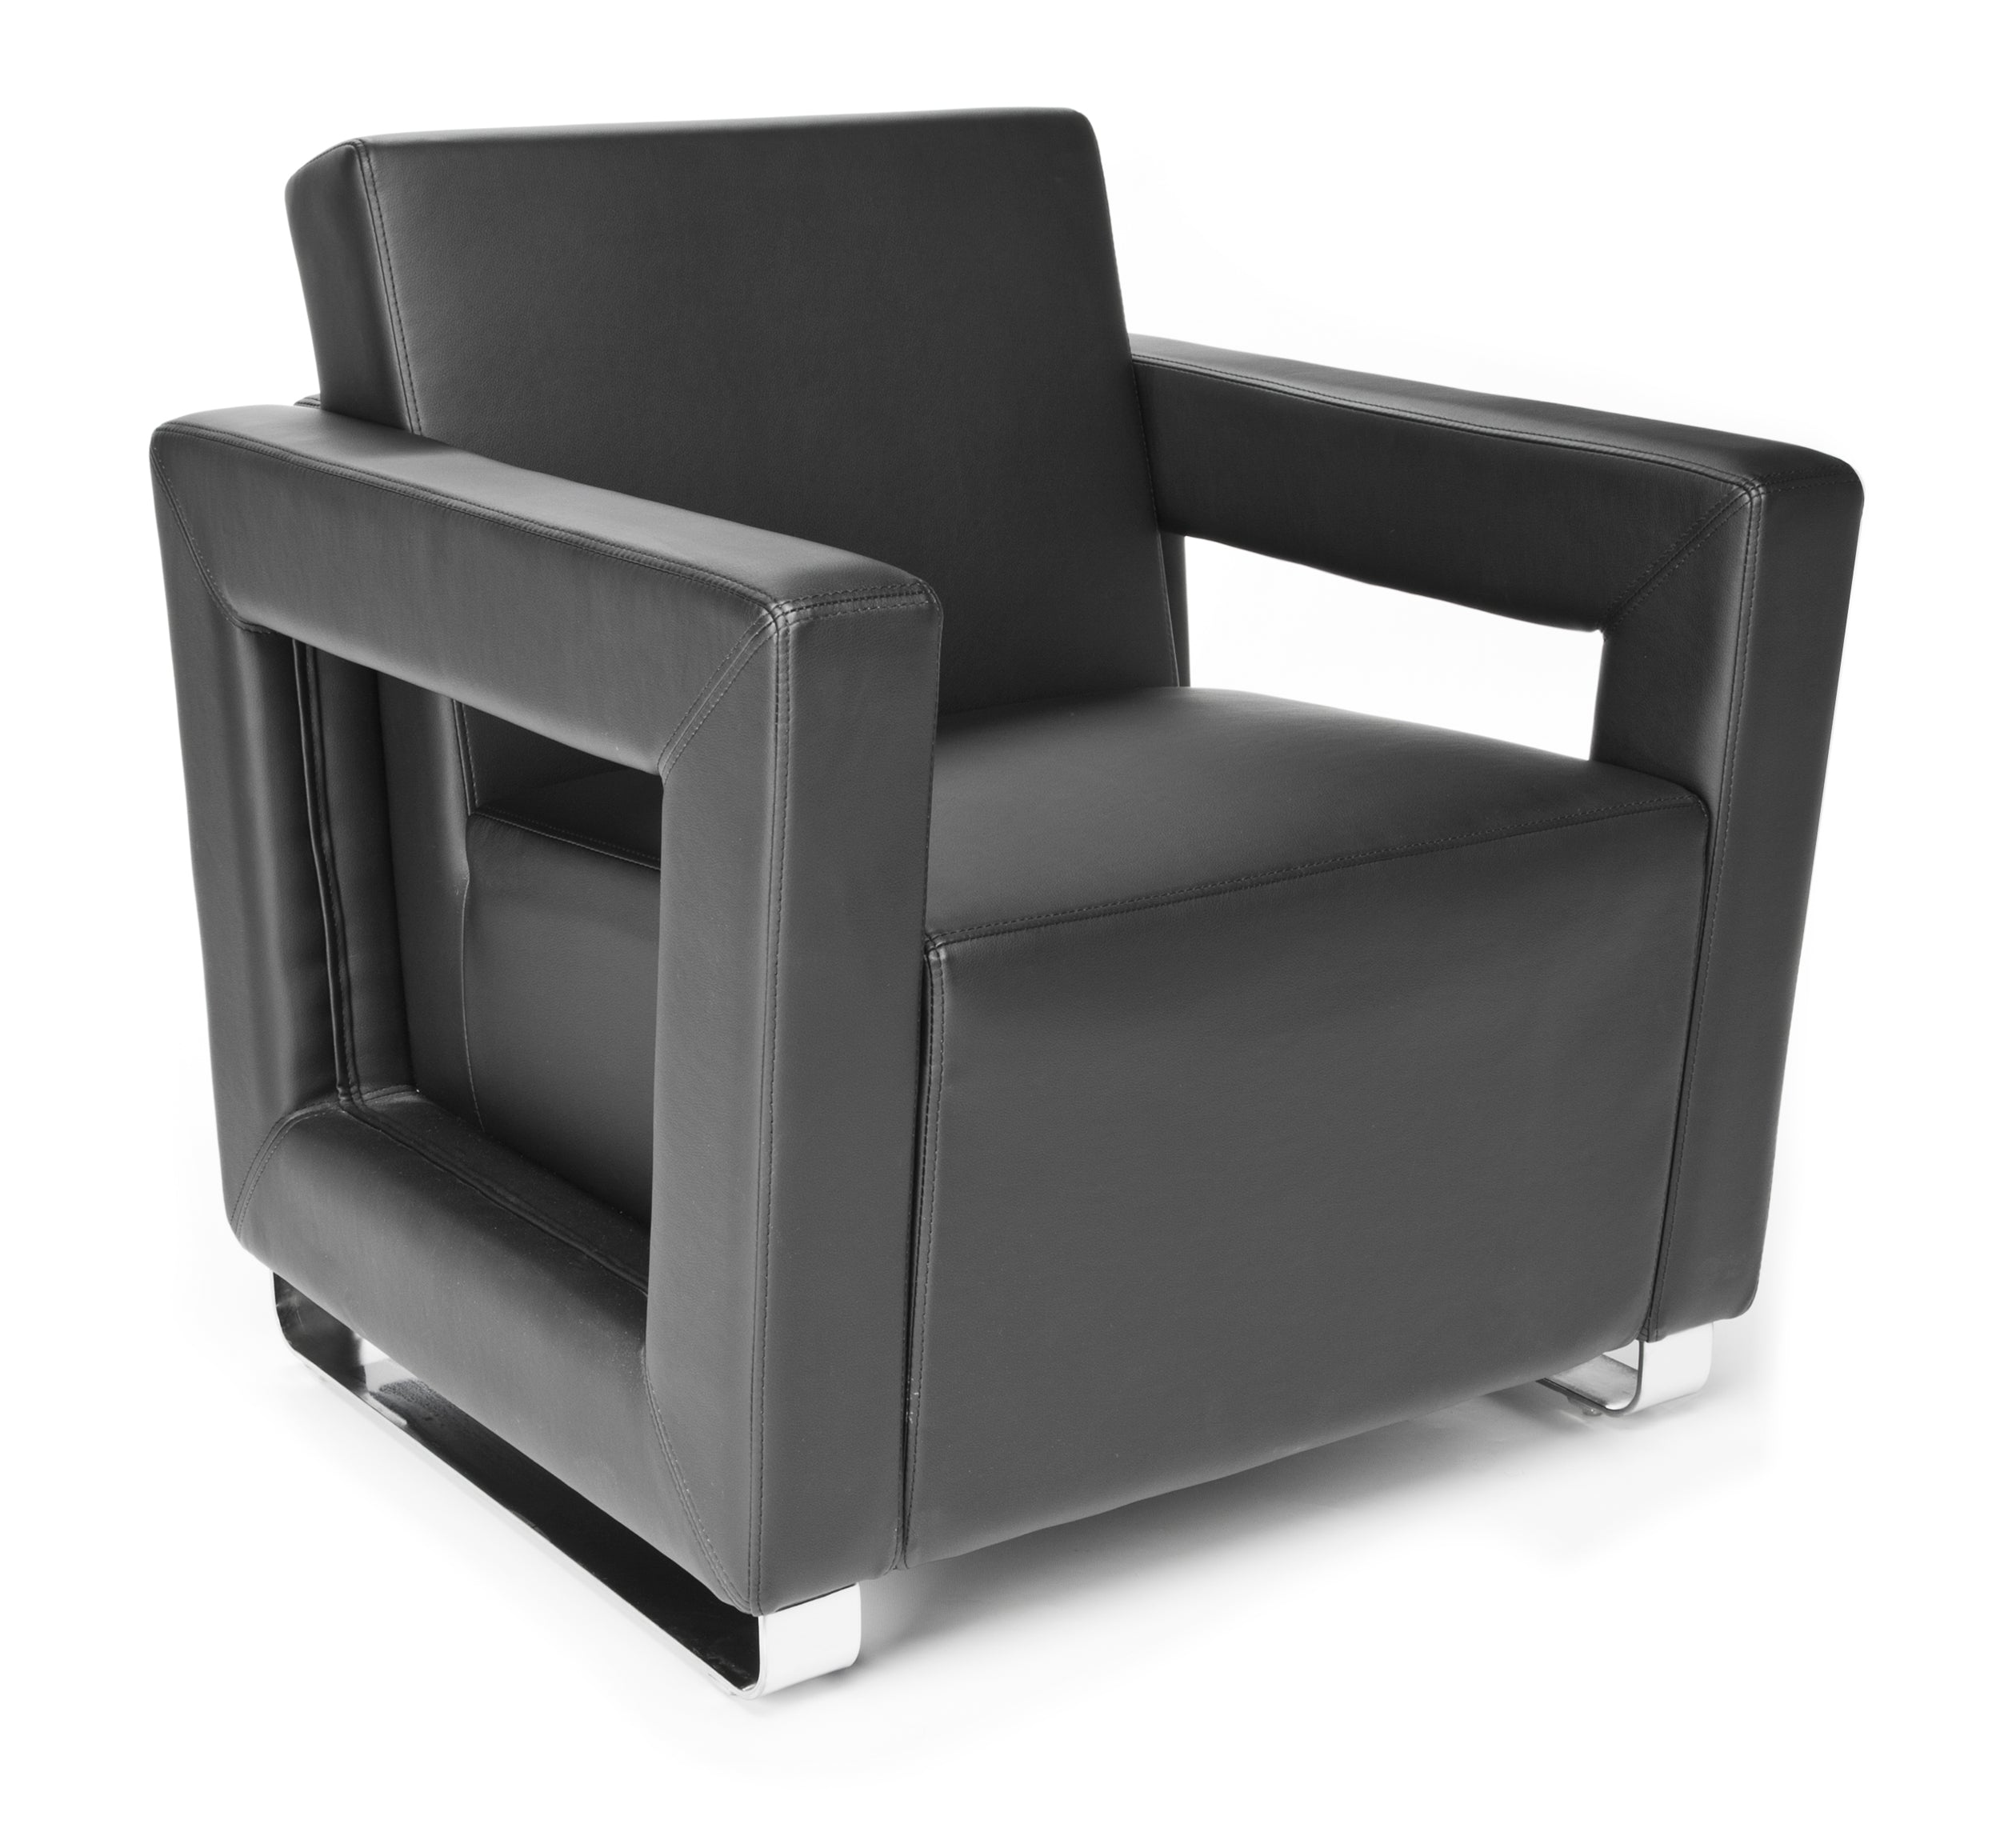 Distinct Series Pu Back & Seat/Chrome Feet Soft Seating Lounge Chair